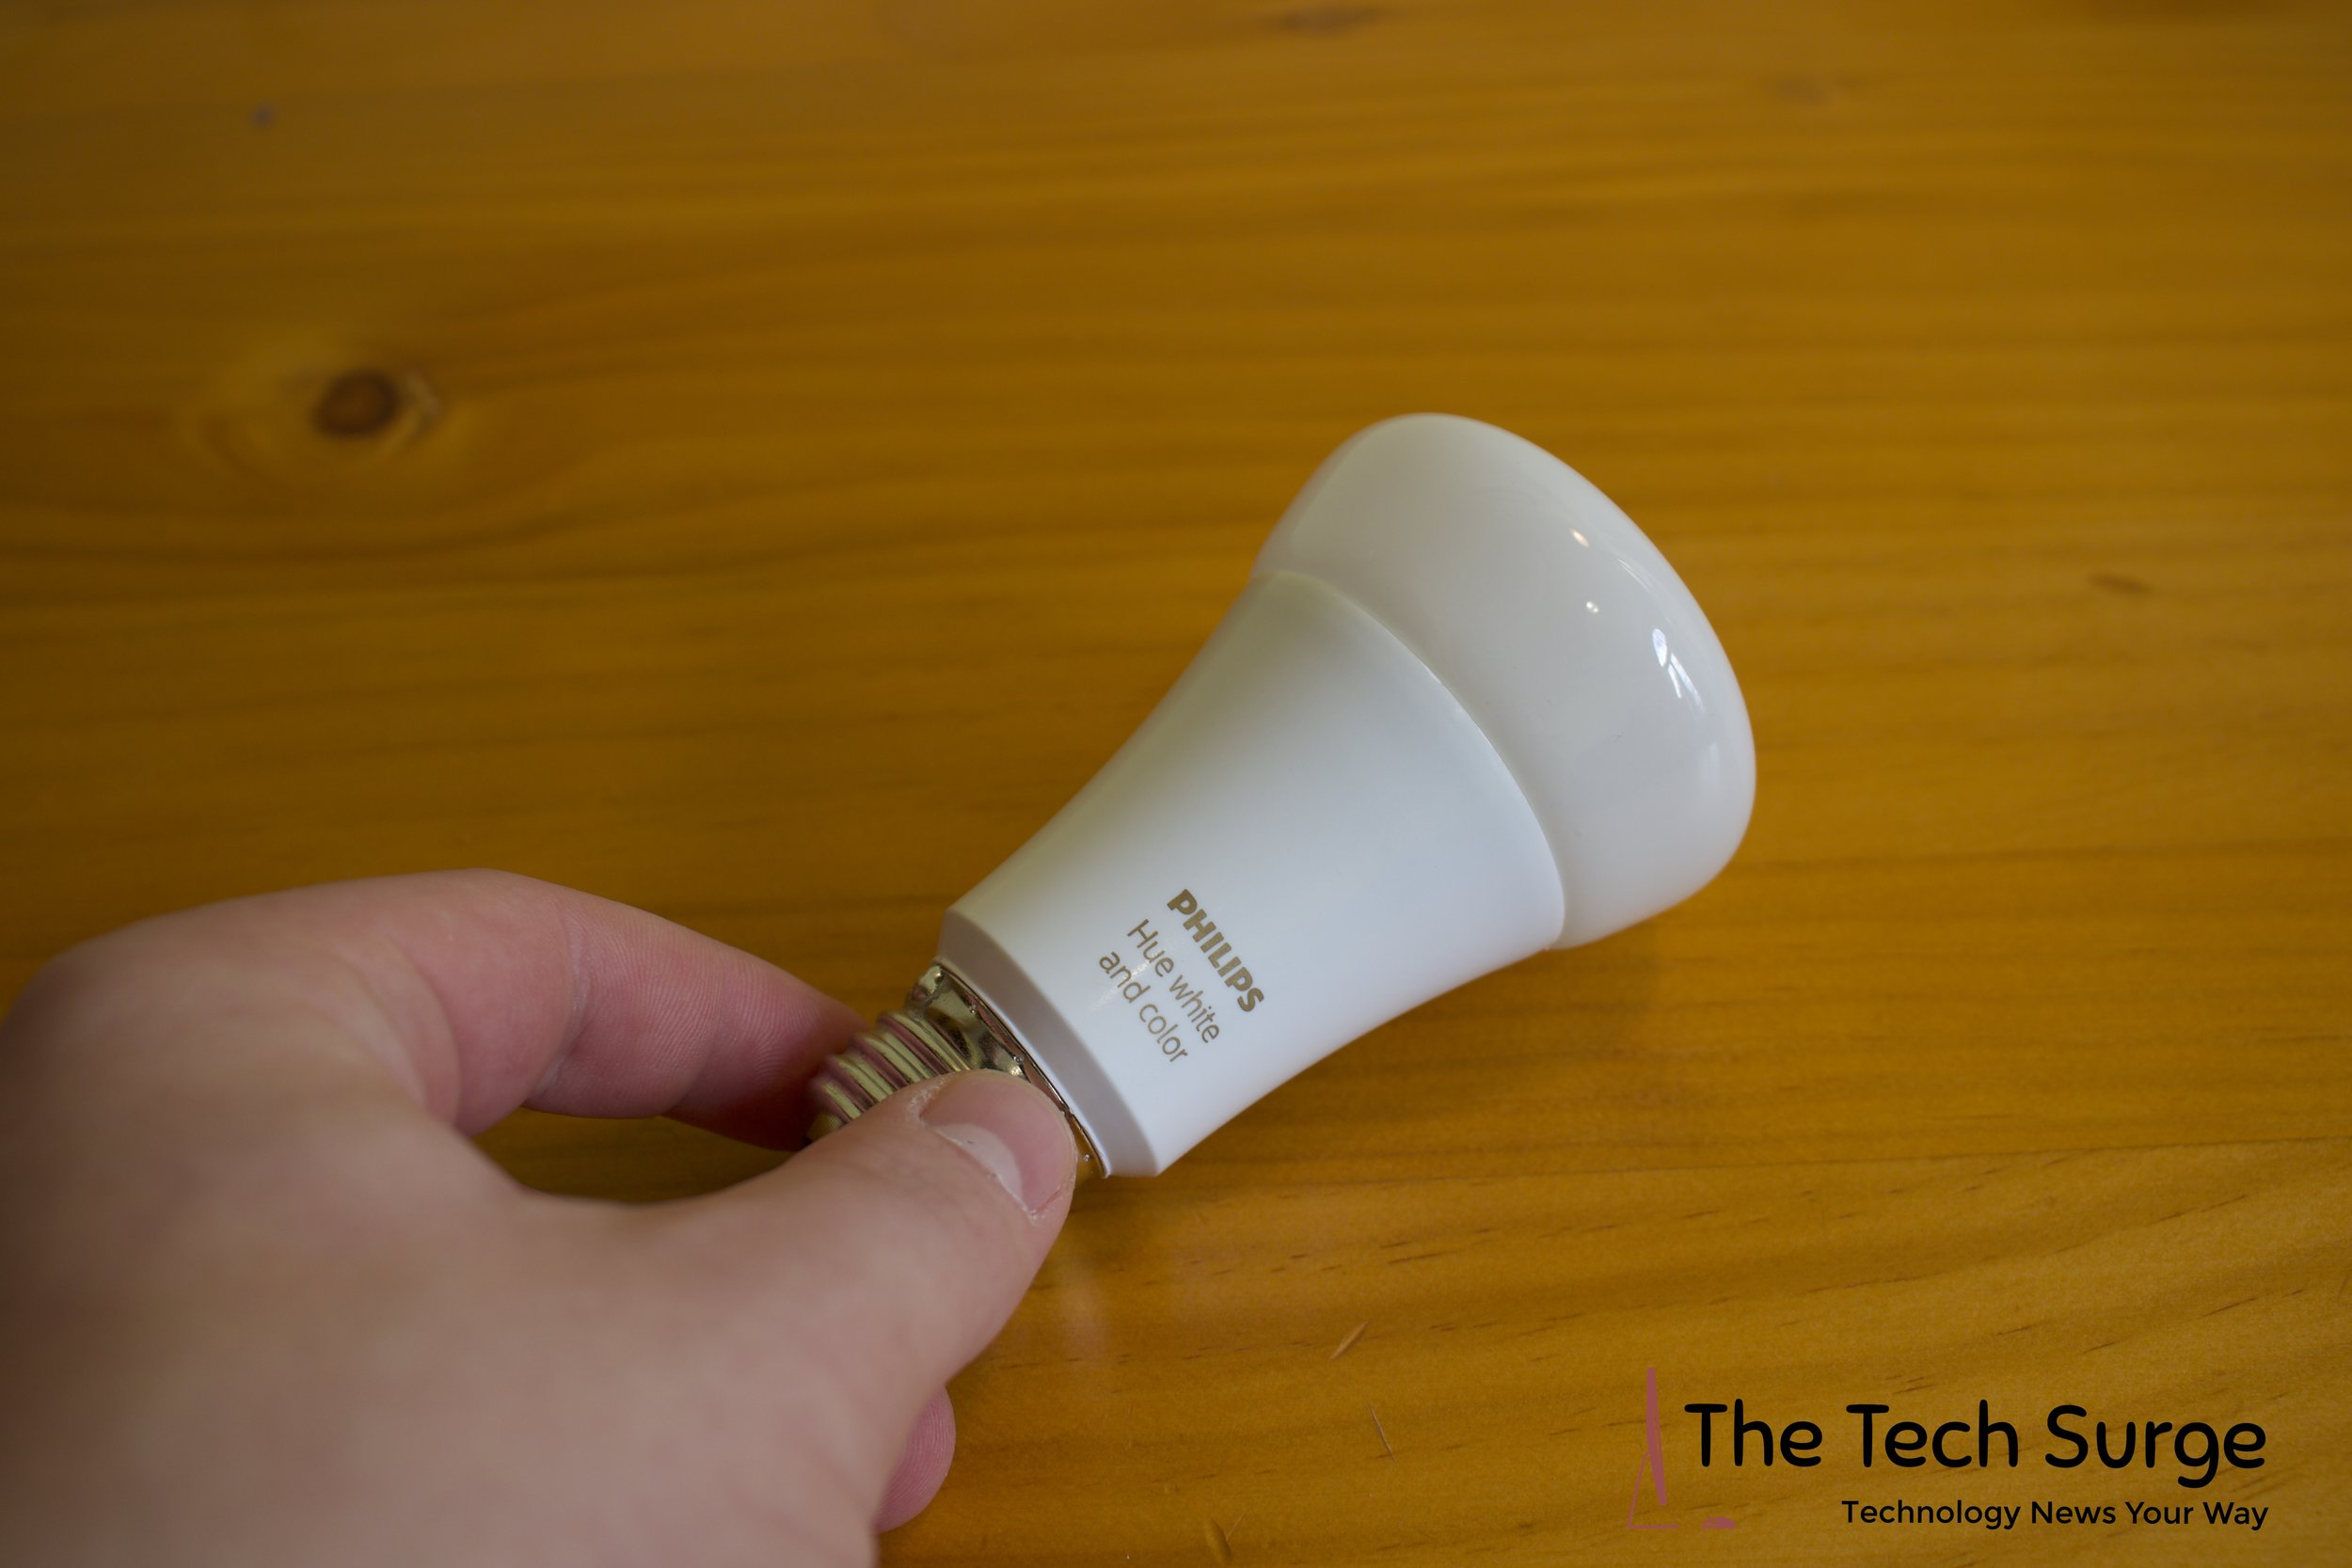 A close up of the actual White and Color Philips Hue lightbulb. The smart light's footprint is similar to that of a regular LED light bulb.